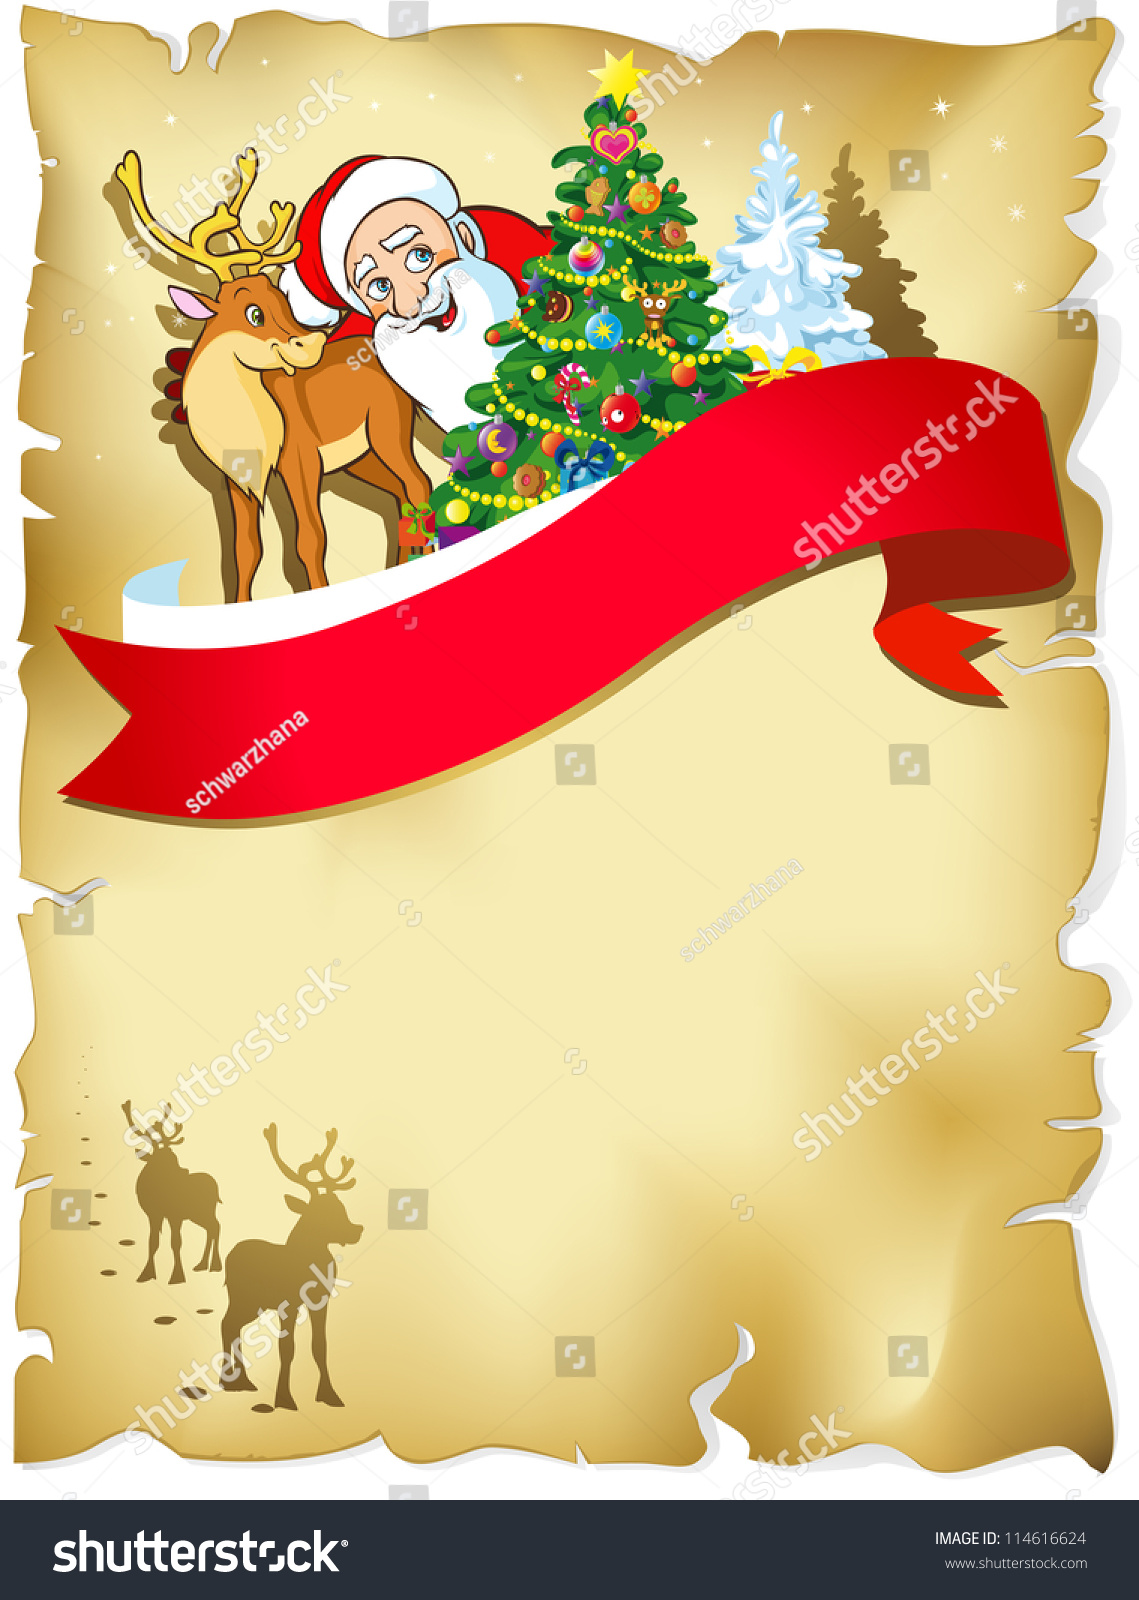 Merry Christmas Frame With Santa, Reindeer, Snow And Romantic Silhouette In  Snowy Landscape On